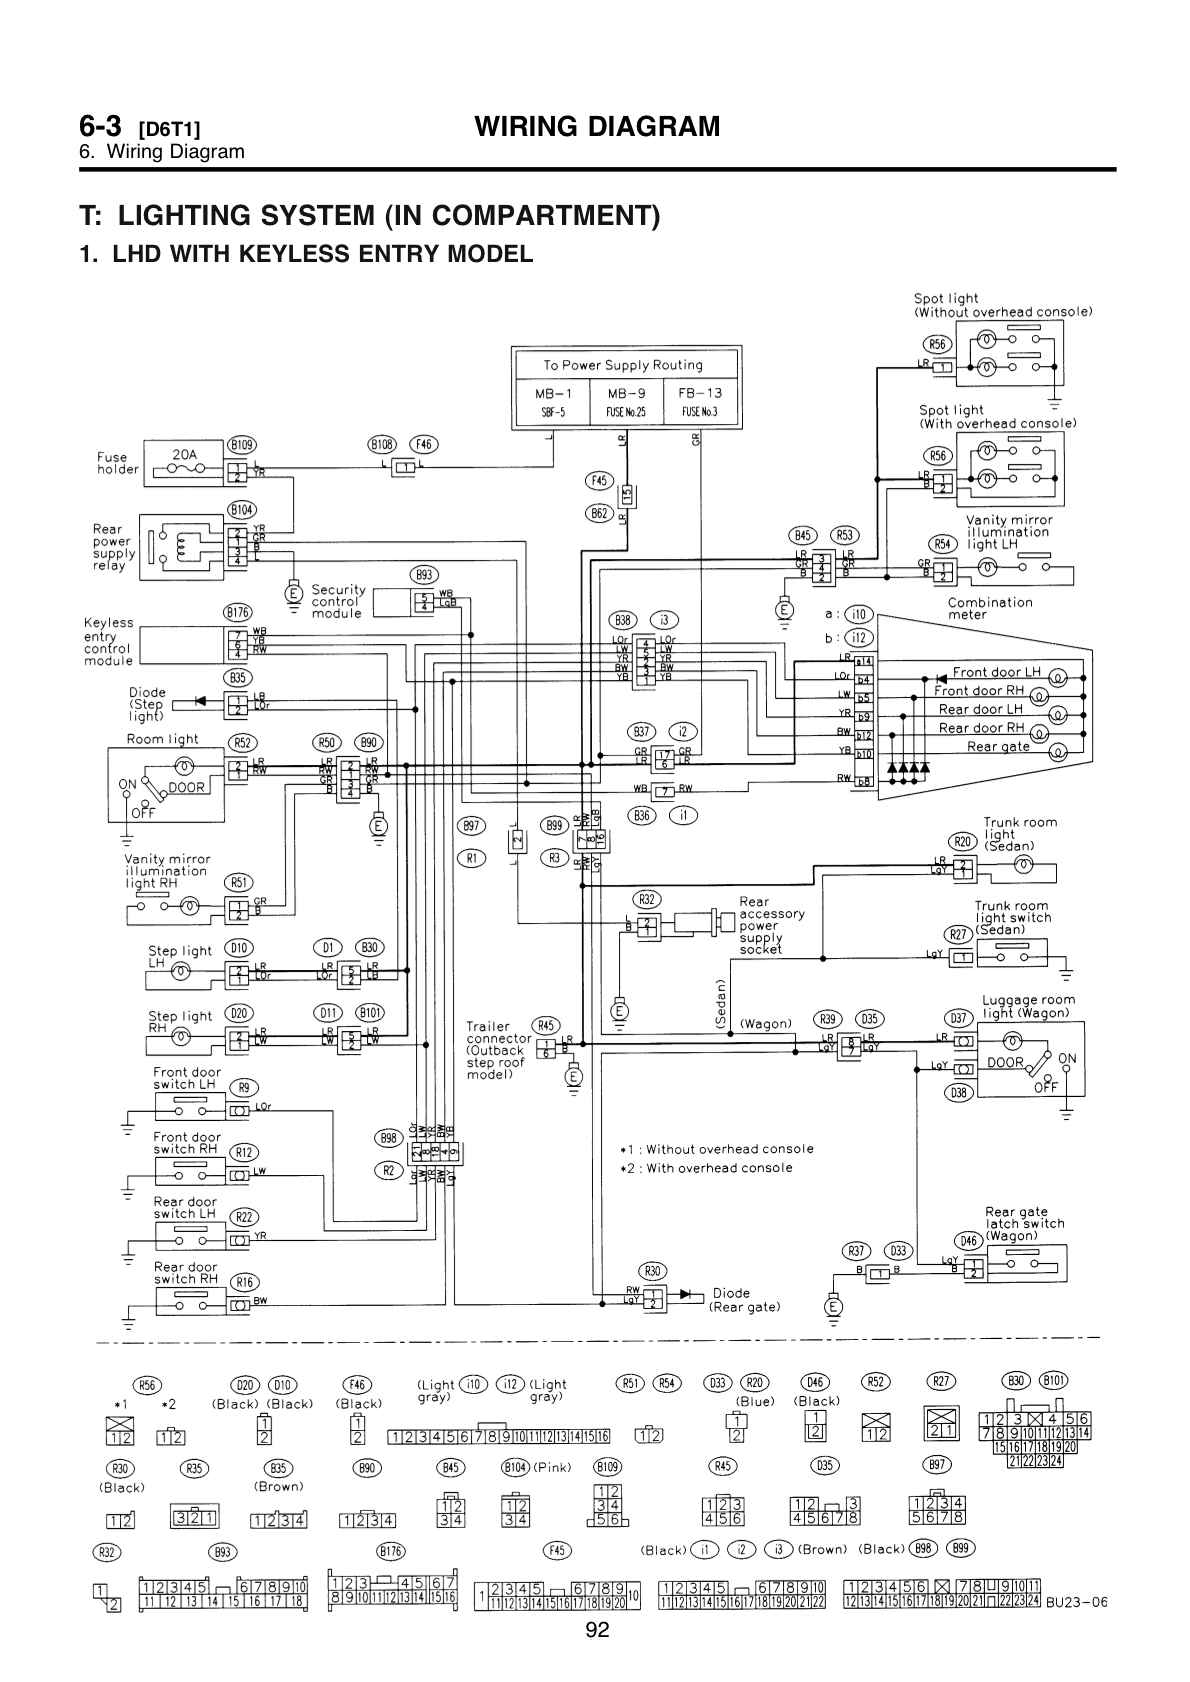 2000 subaru outback stereo wiring diagram installing heated mirrors on a car that came without them?